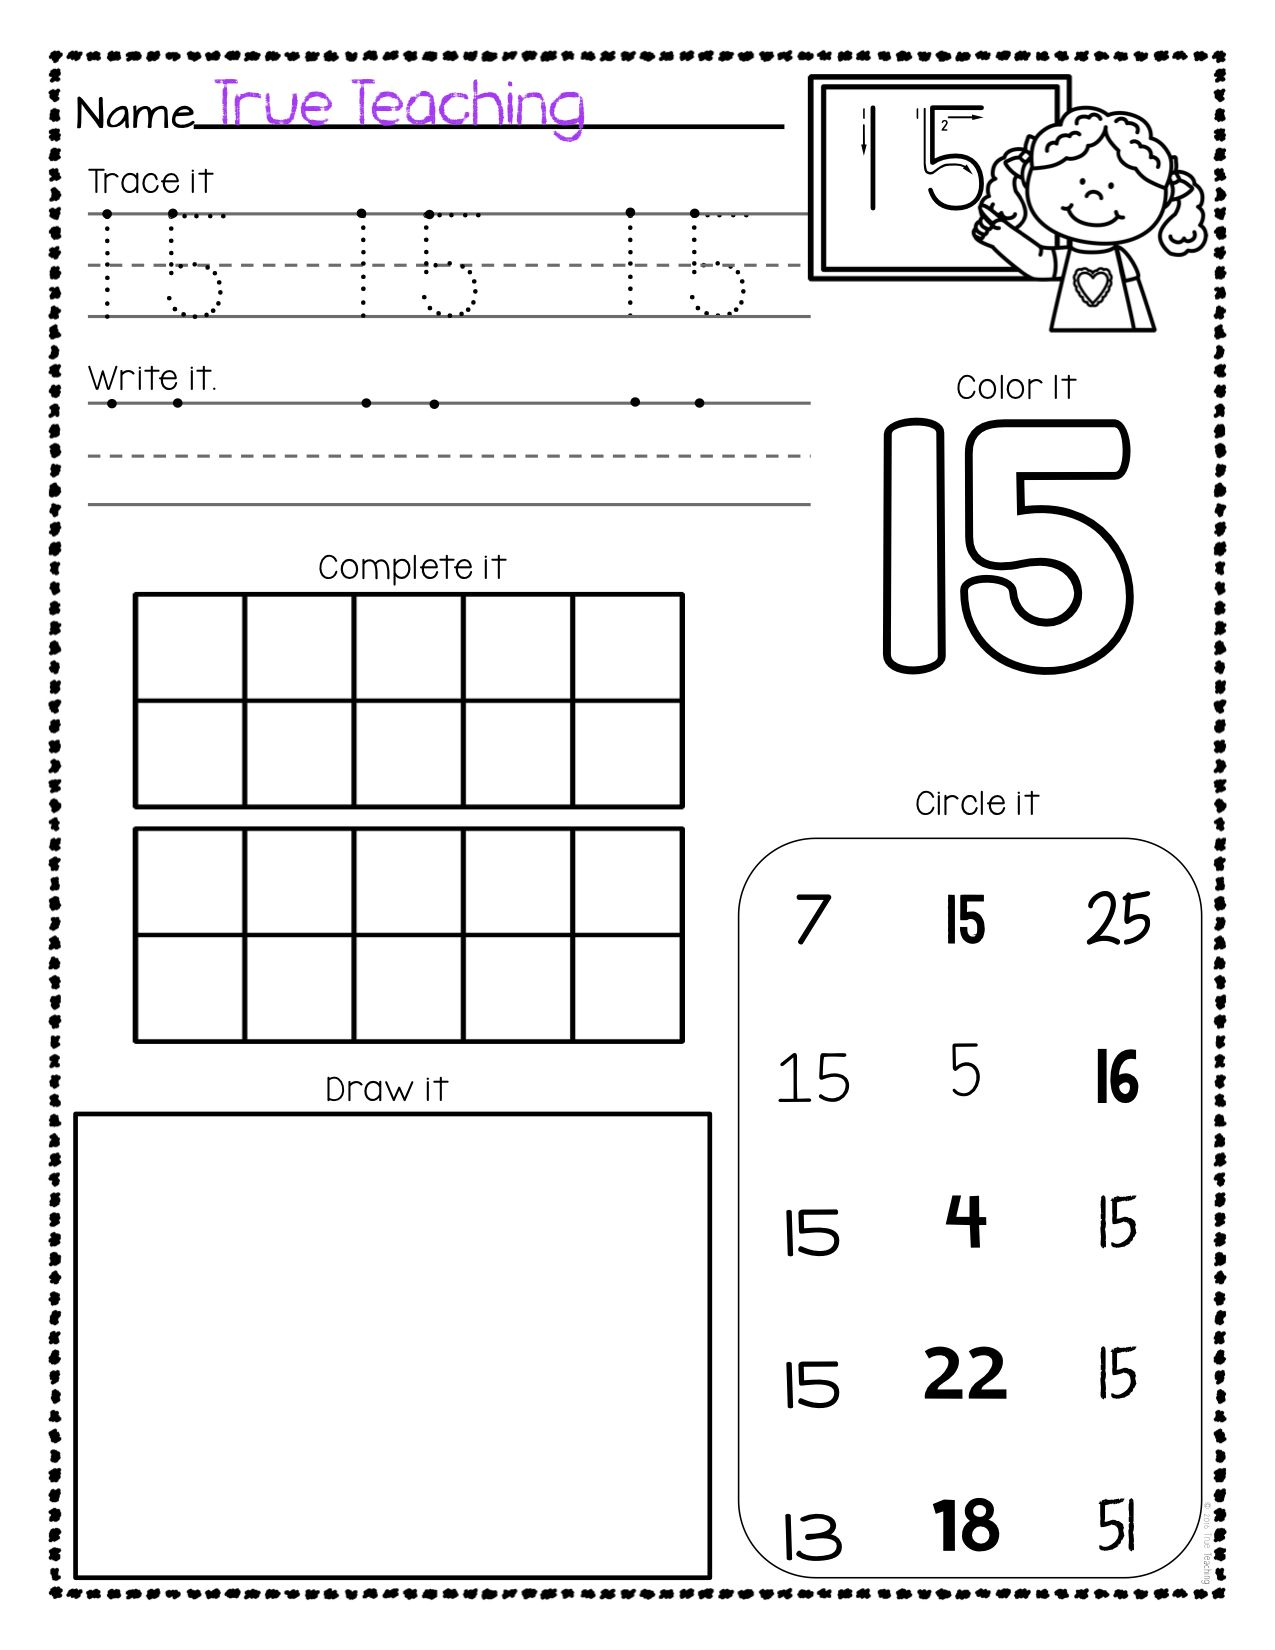 Number Activity Pages 11 20 No Teacher Prep Work Simply Print And They Ar Preschool Worksheets Kindergarten Math Worksheets Addition Kids Math Worksheets